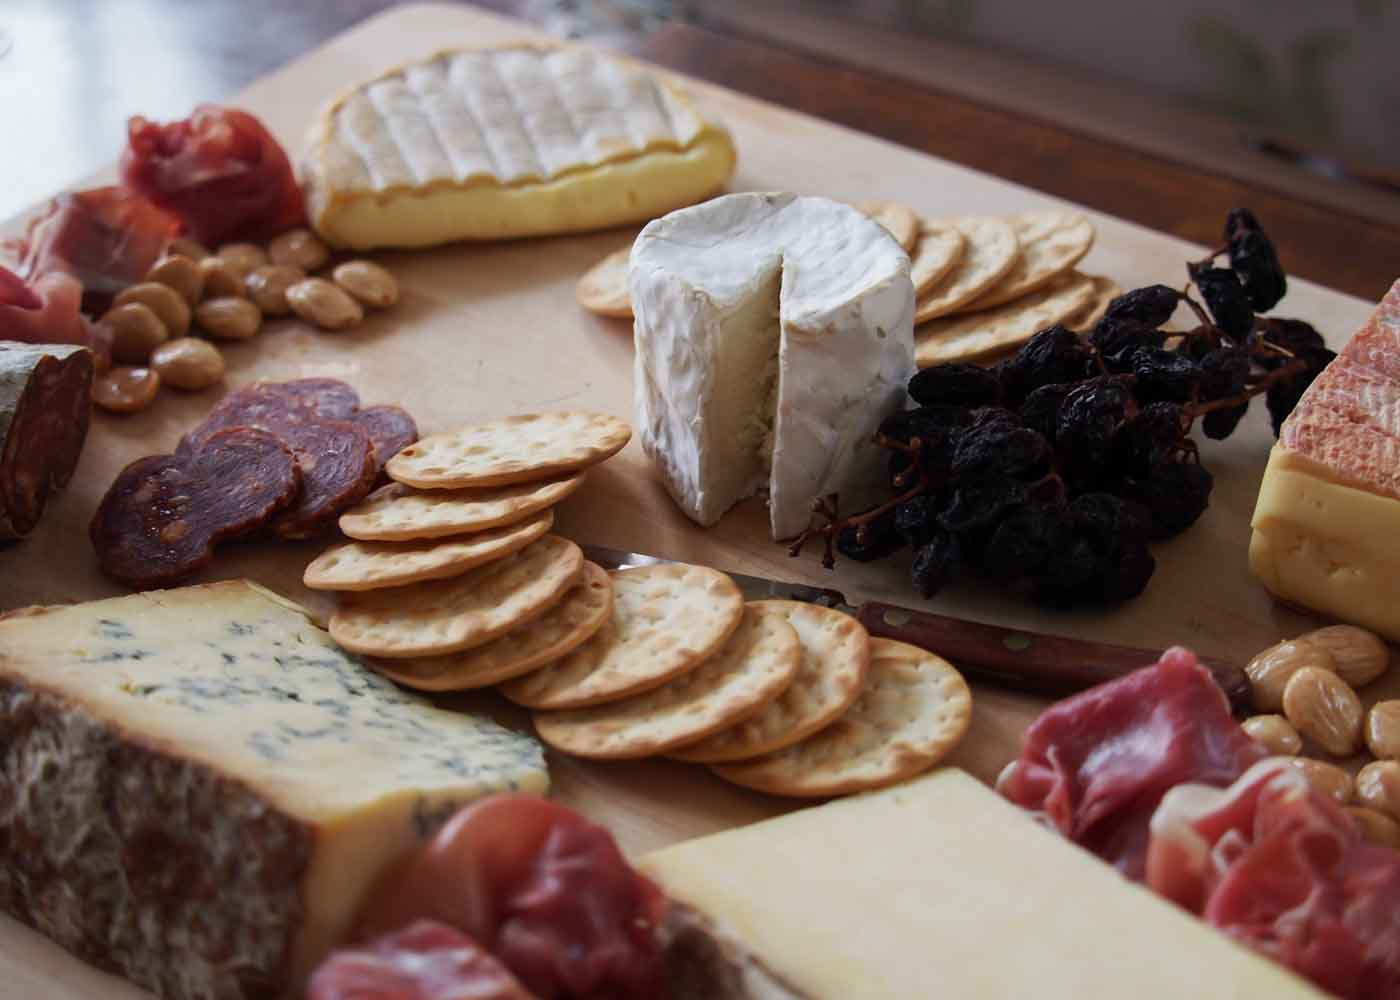 A selection of cheeses, almonds, raisins on the vine and prosciutto from Formaggio Kitchen.